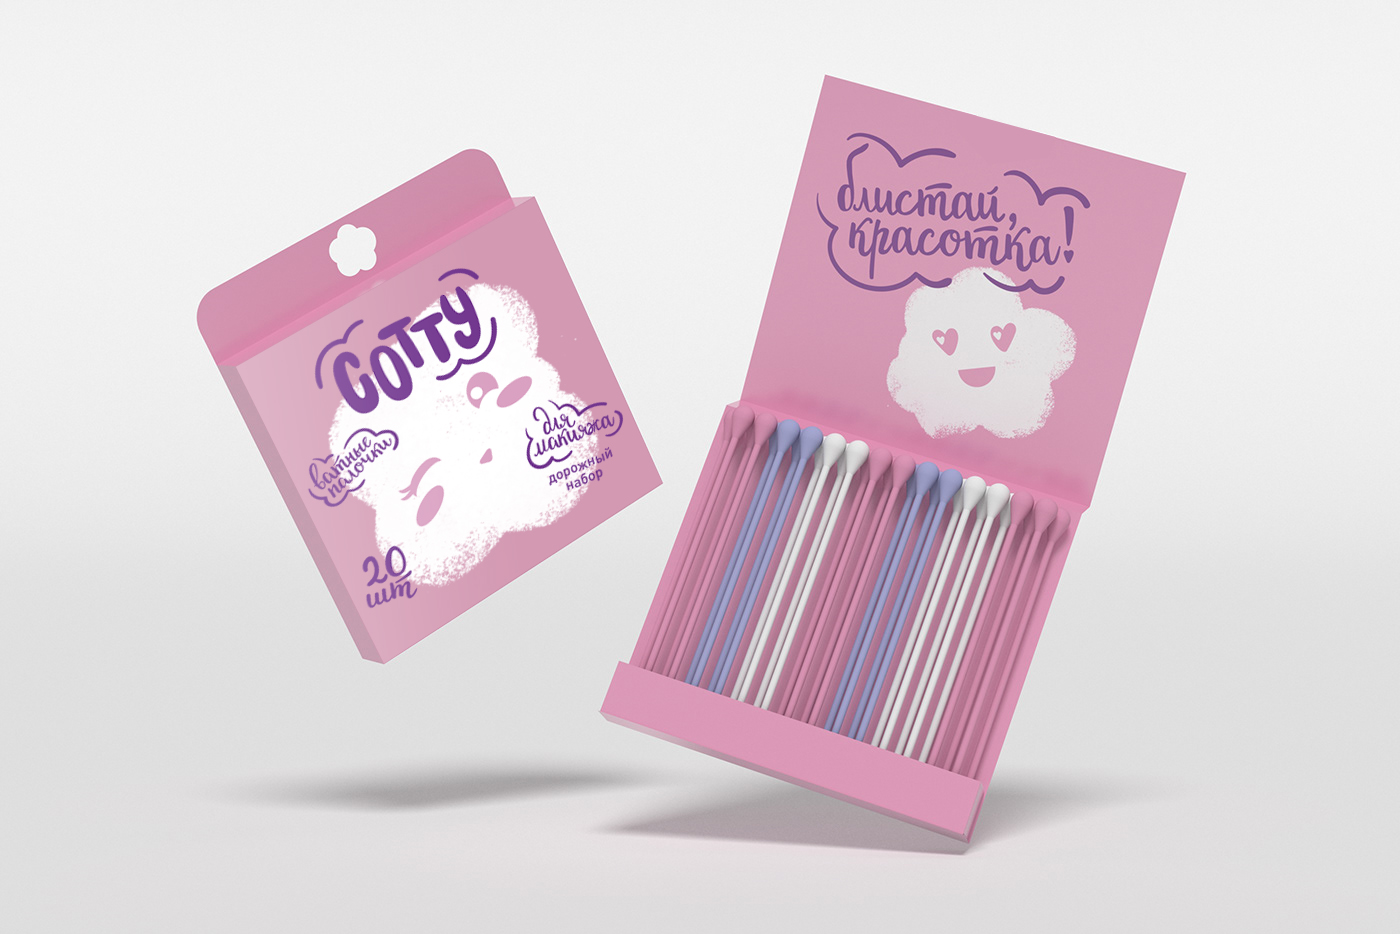 """""""Cotty"""" Brand and Packaging Design for Cotton Products / World Brand Design Society"""